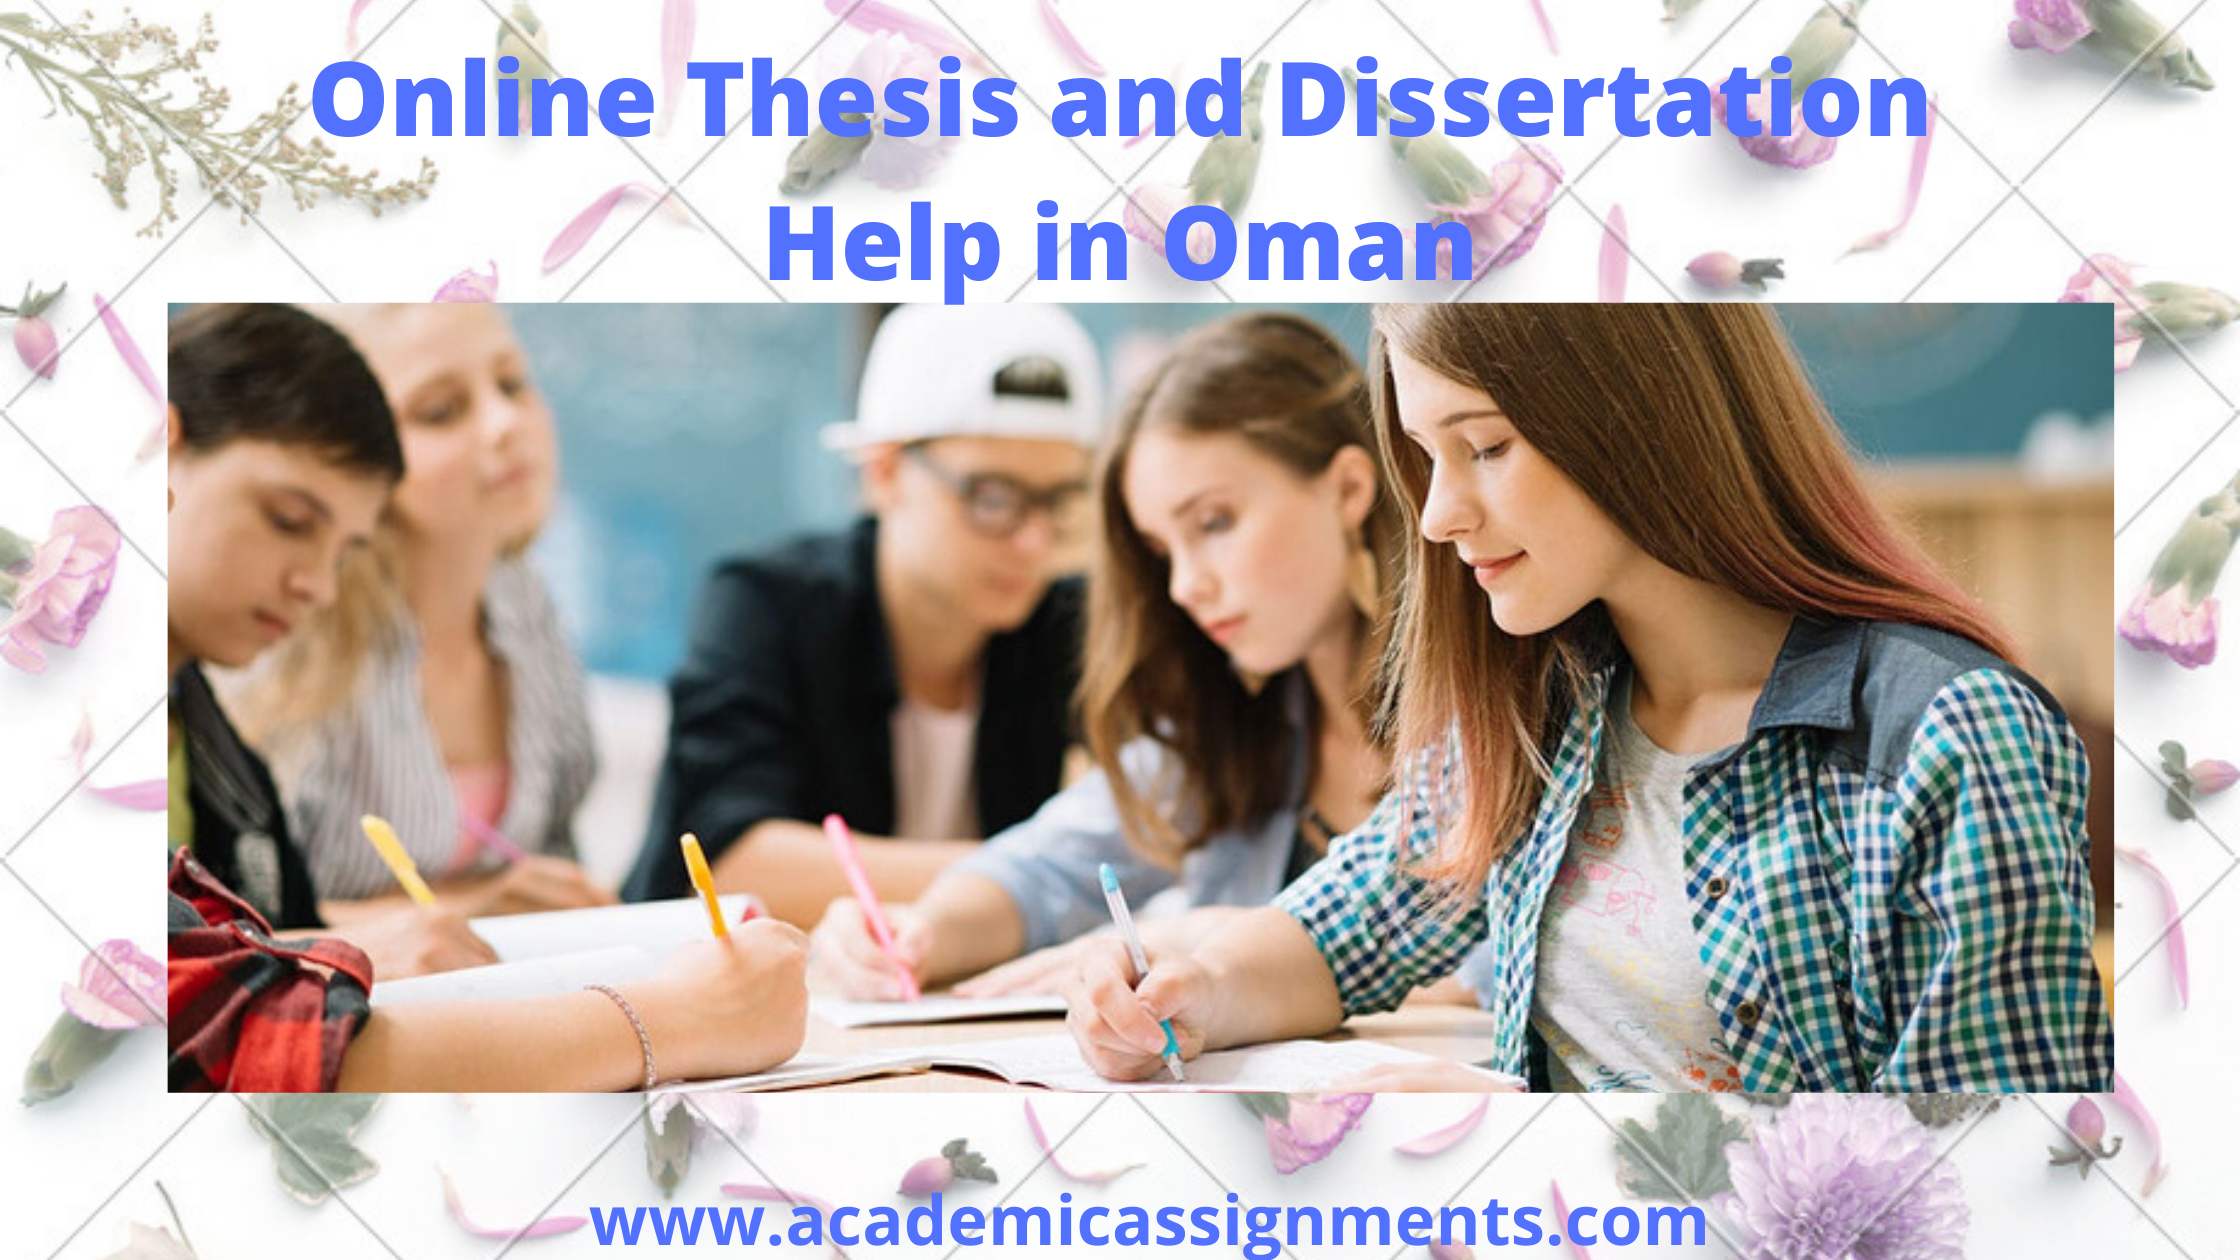 Online Thesis and Dissertation Help in Oman